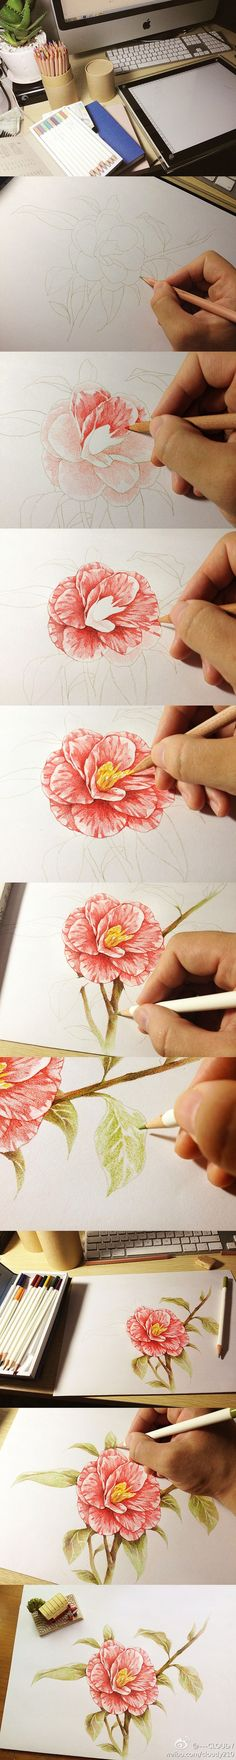 Flowers Drawing Tutorial Pencil New Ideas Pencil Drawings, Art Drawings, Realistic Drawings, Color Pencil Art, Coloured Pencils, Drawing Techniques, Art Tutorials, Drawing Tutorials, Drawing Ideas